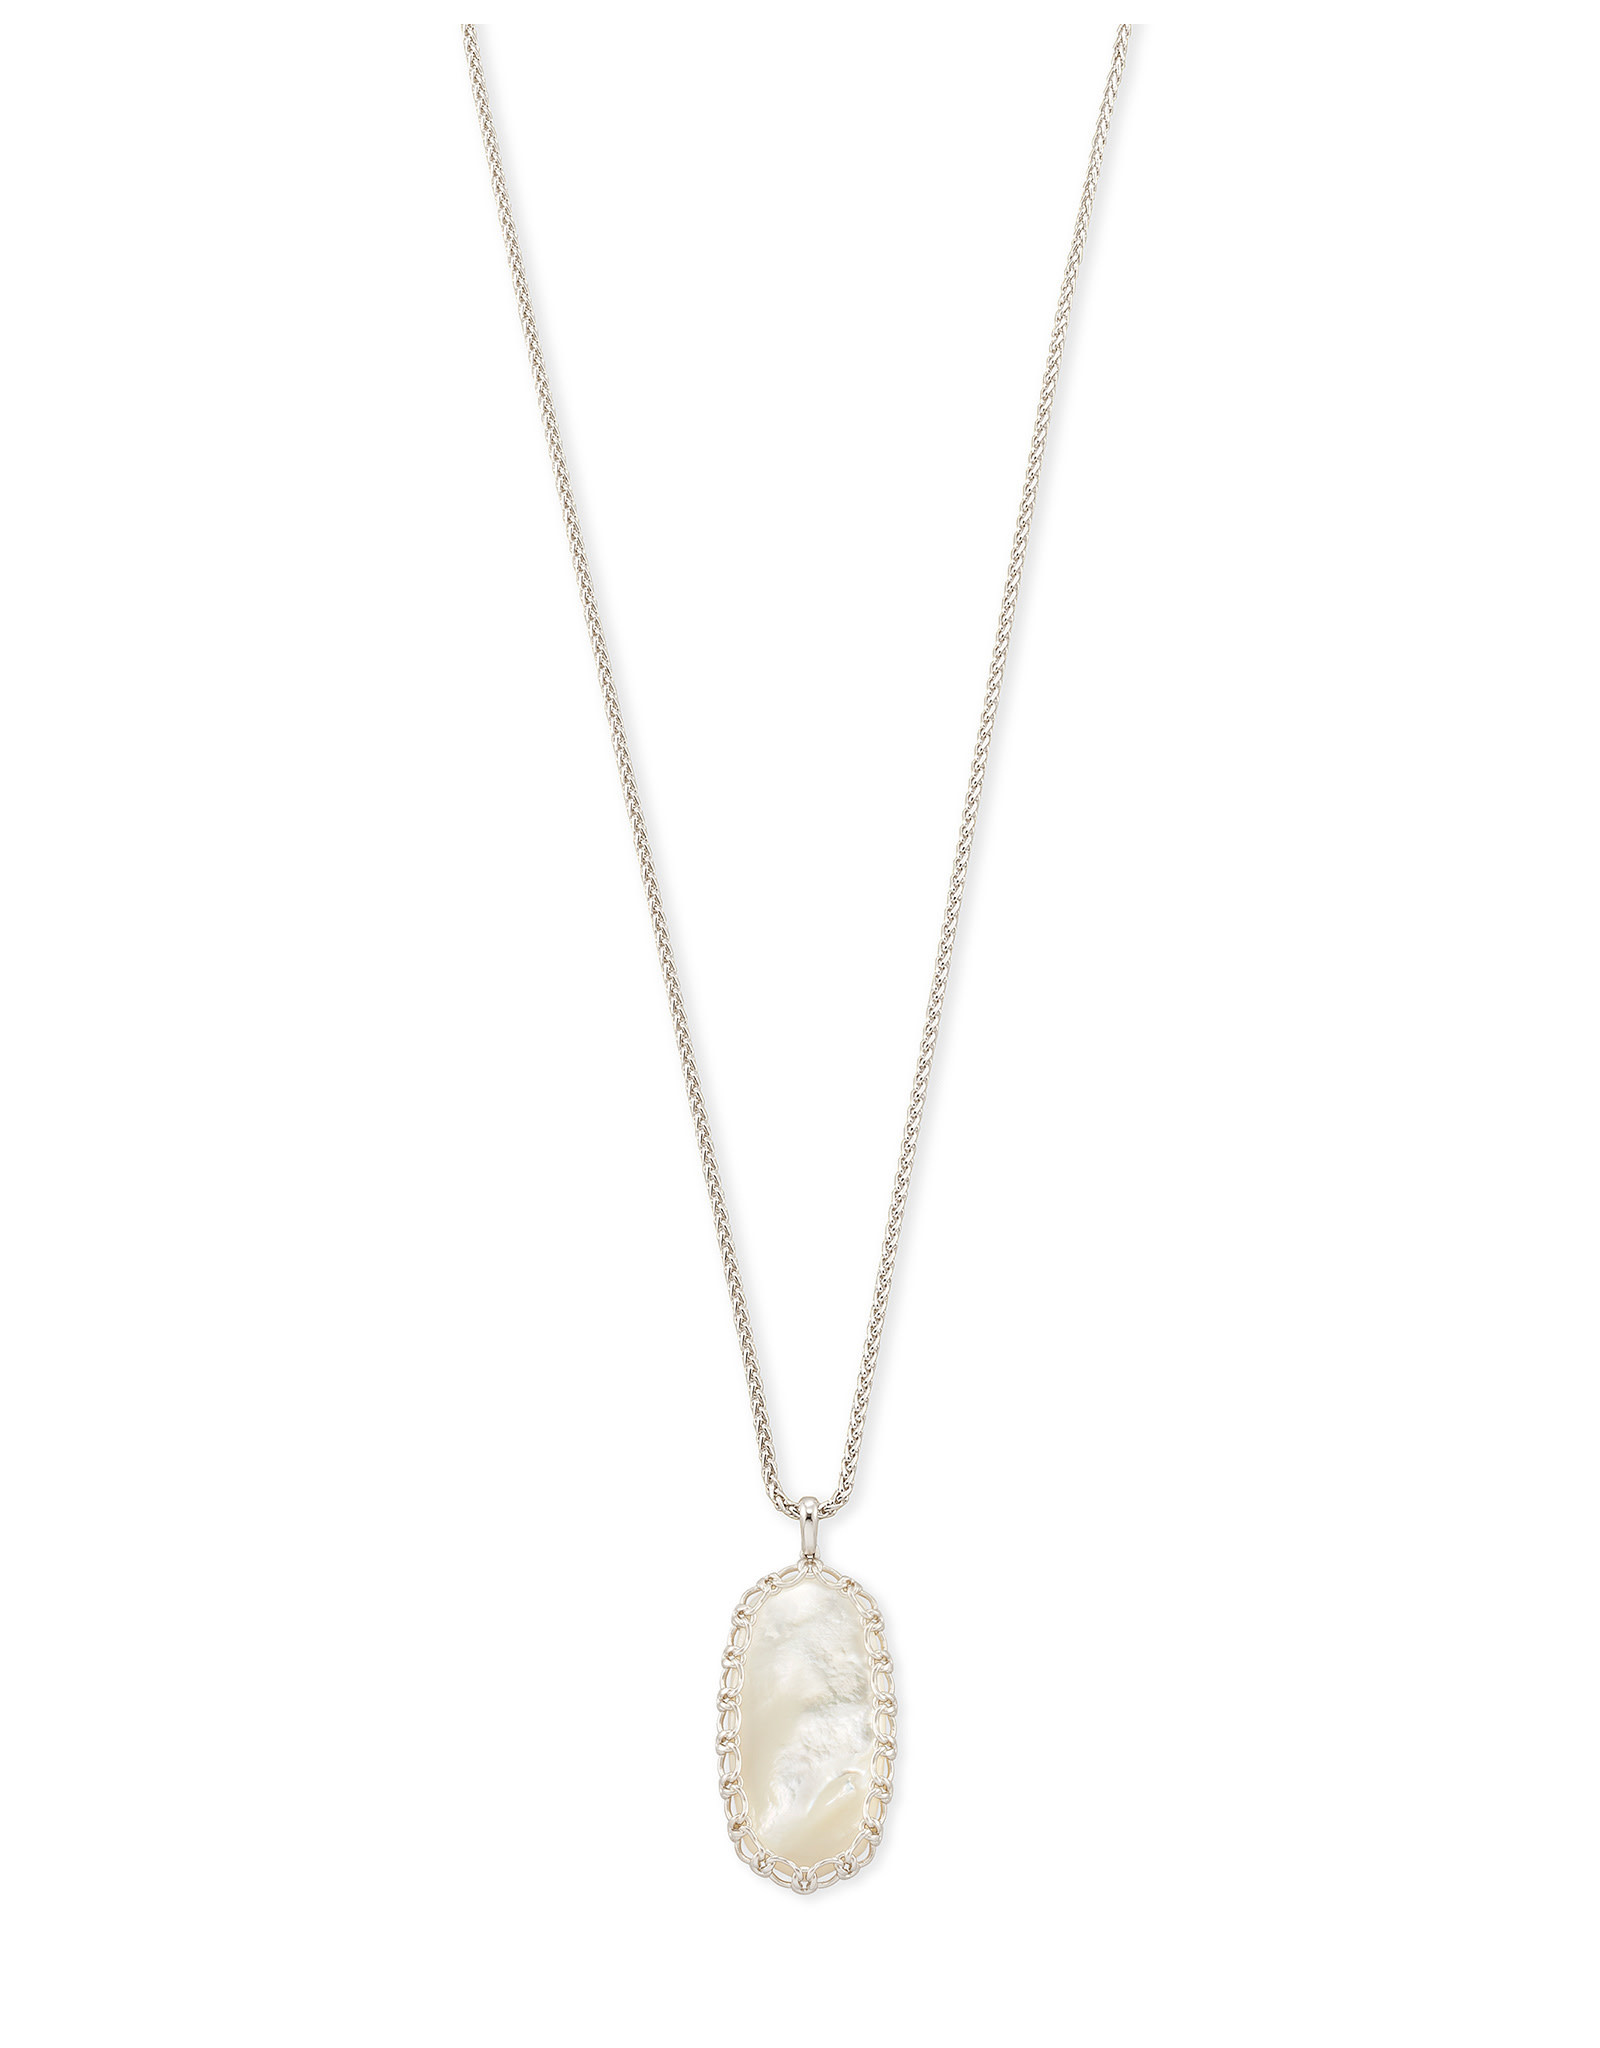 Kendra Scott Macrame Reid Necklace